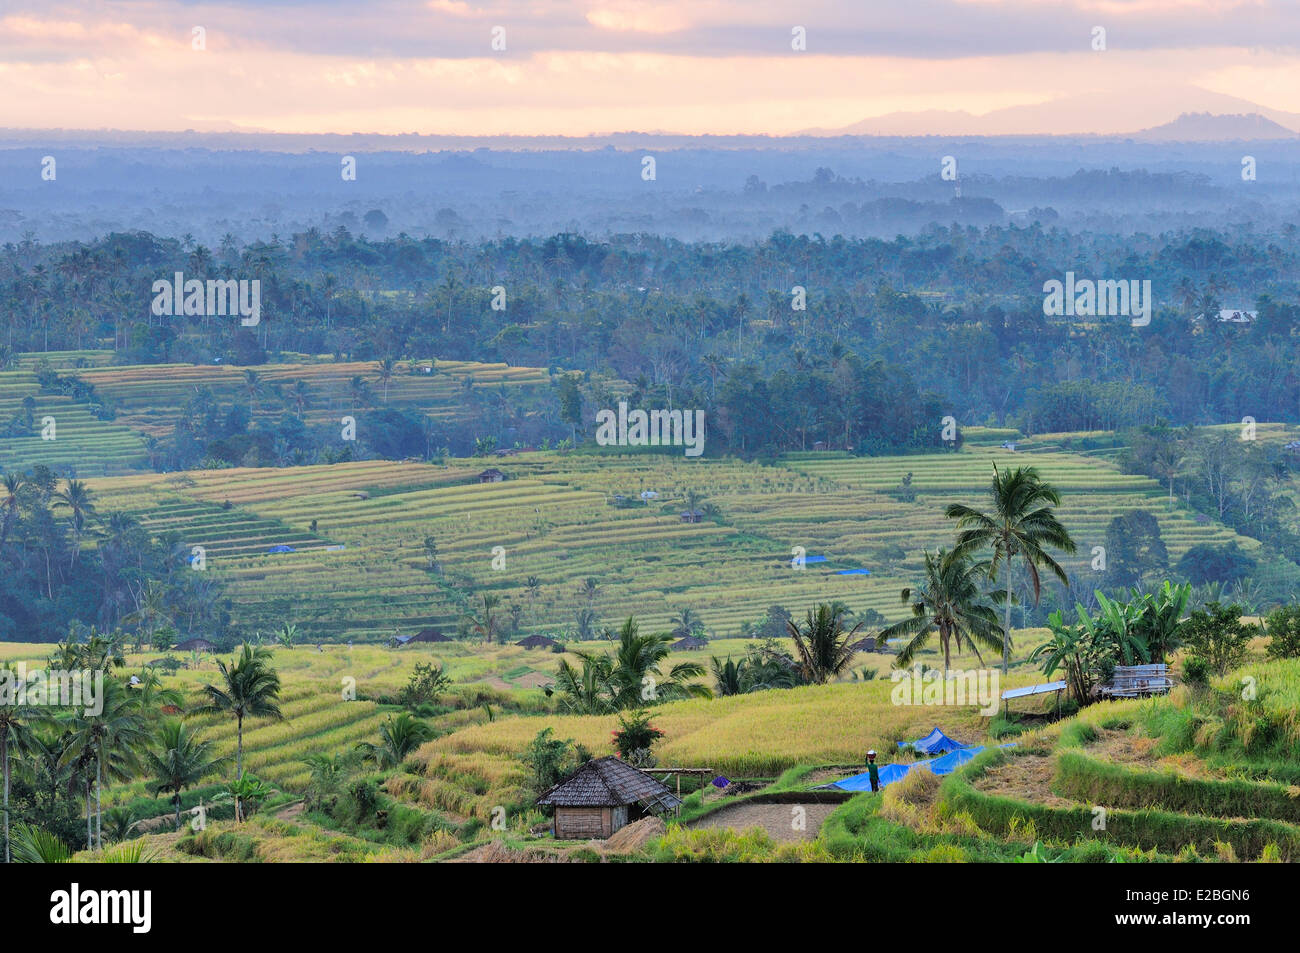 Indonesia, Bali, the rice fields of Jatiluwih, the subak system, listed as World Heritage by UNESCO, cooperative - Stock Image